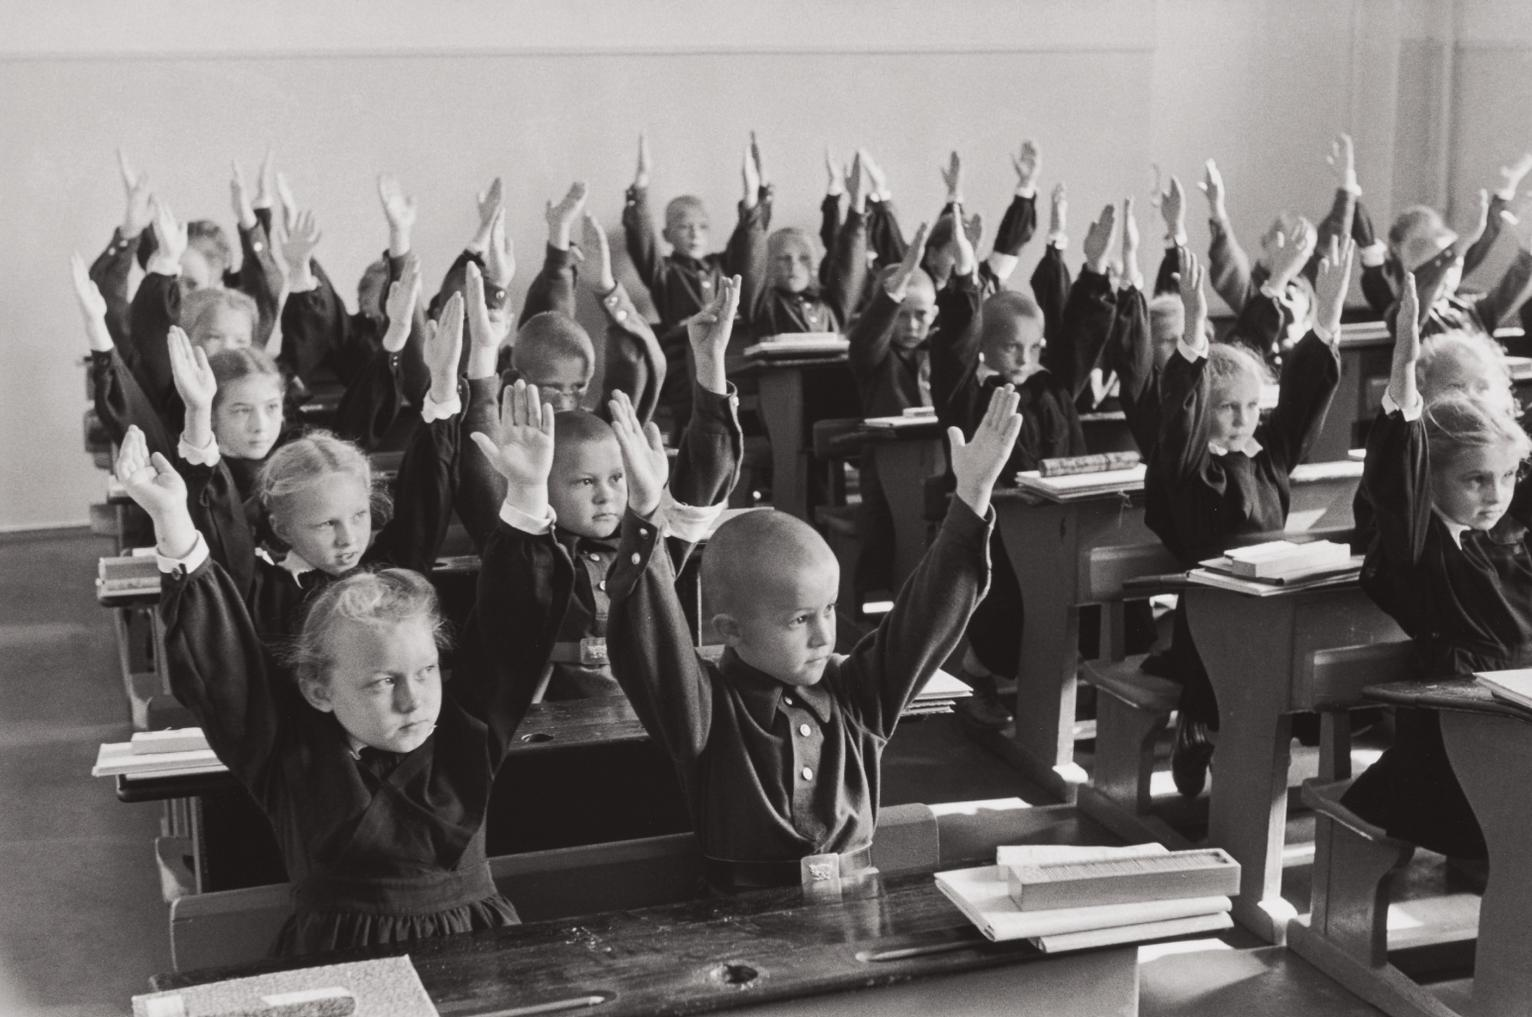 Henri Cartier-Bresson-School Children, Moscow, Ussr-1954